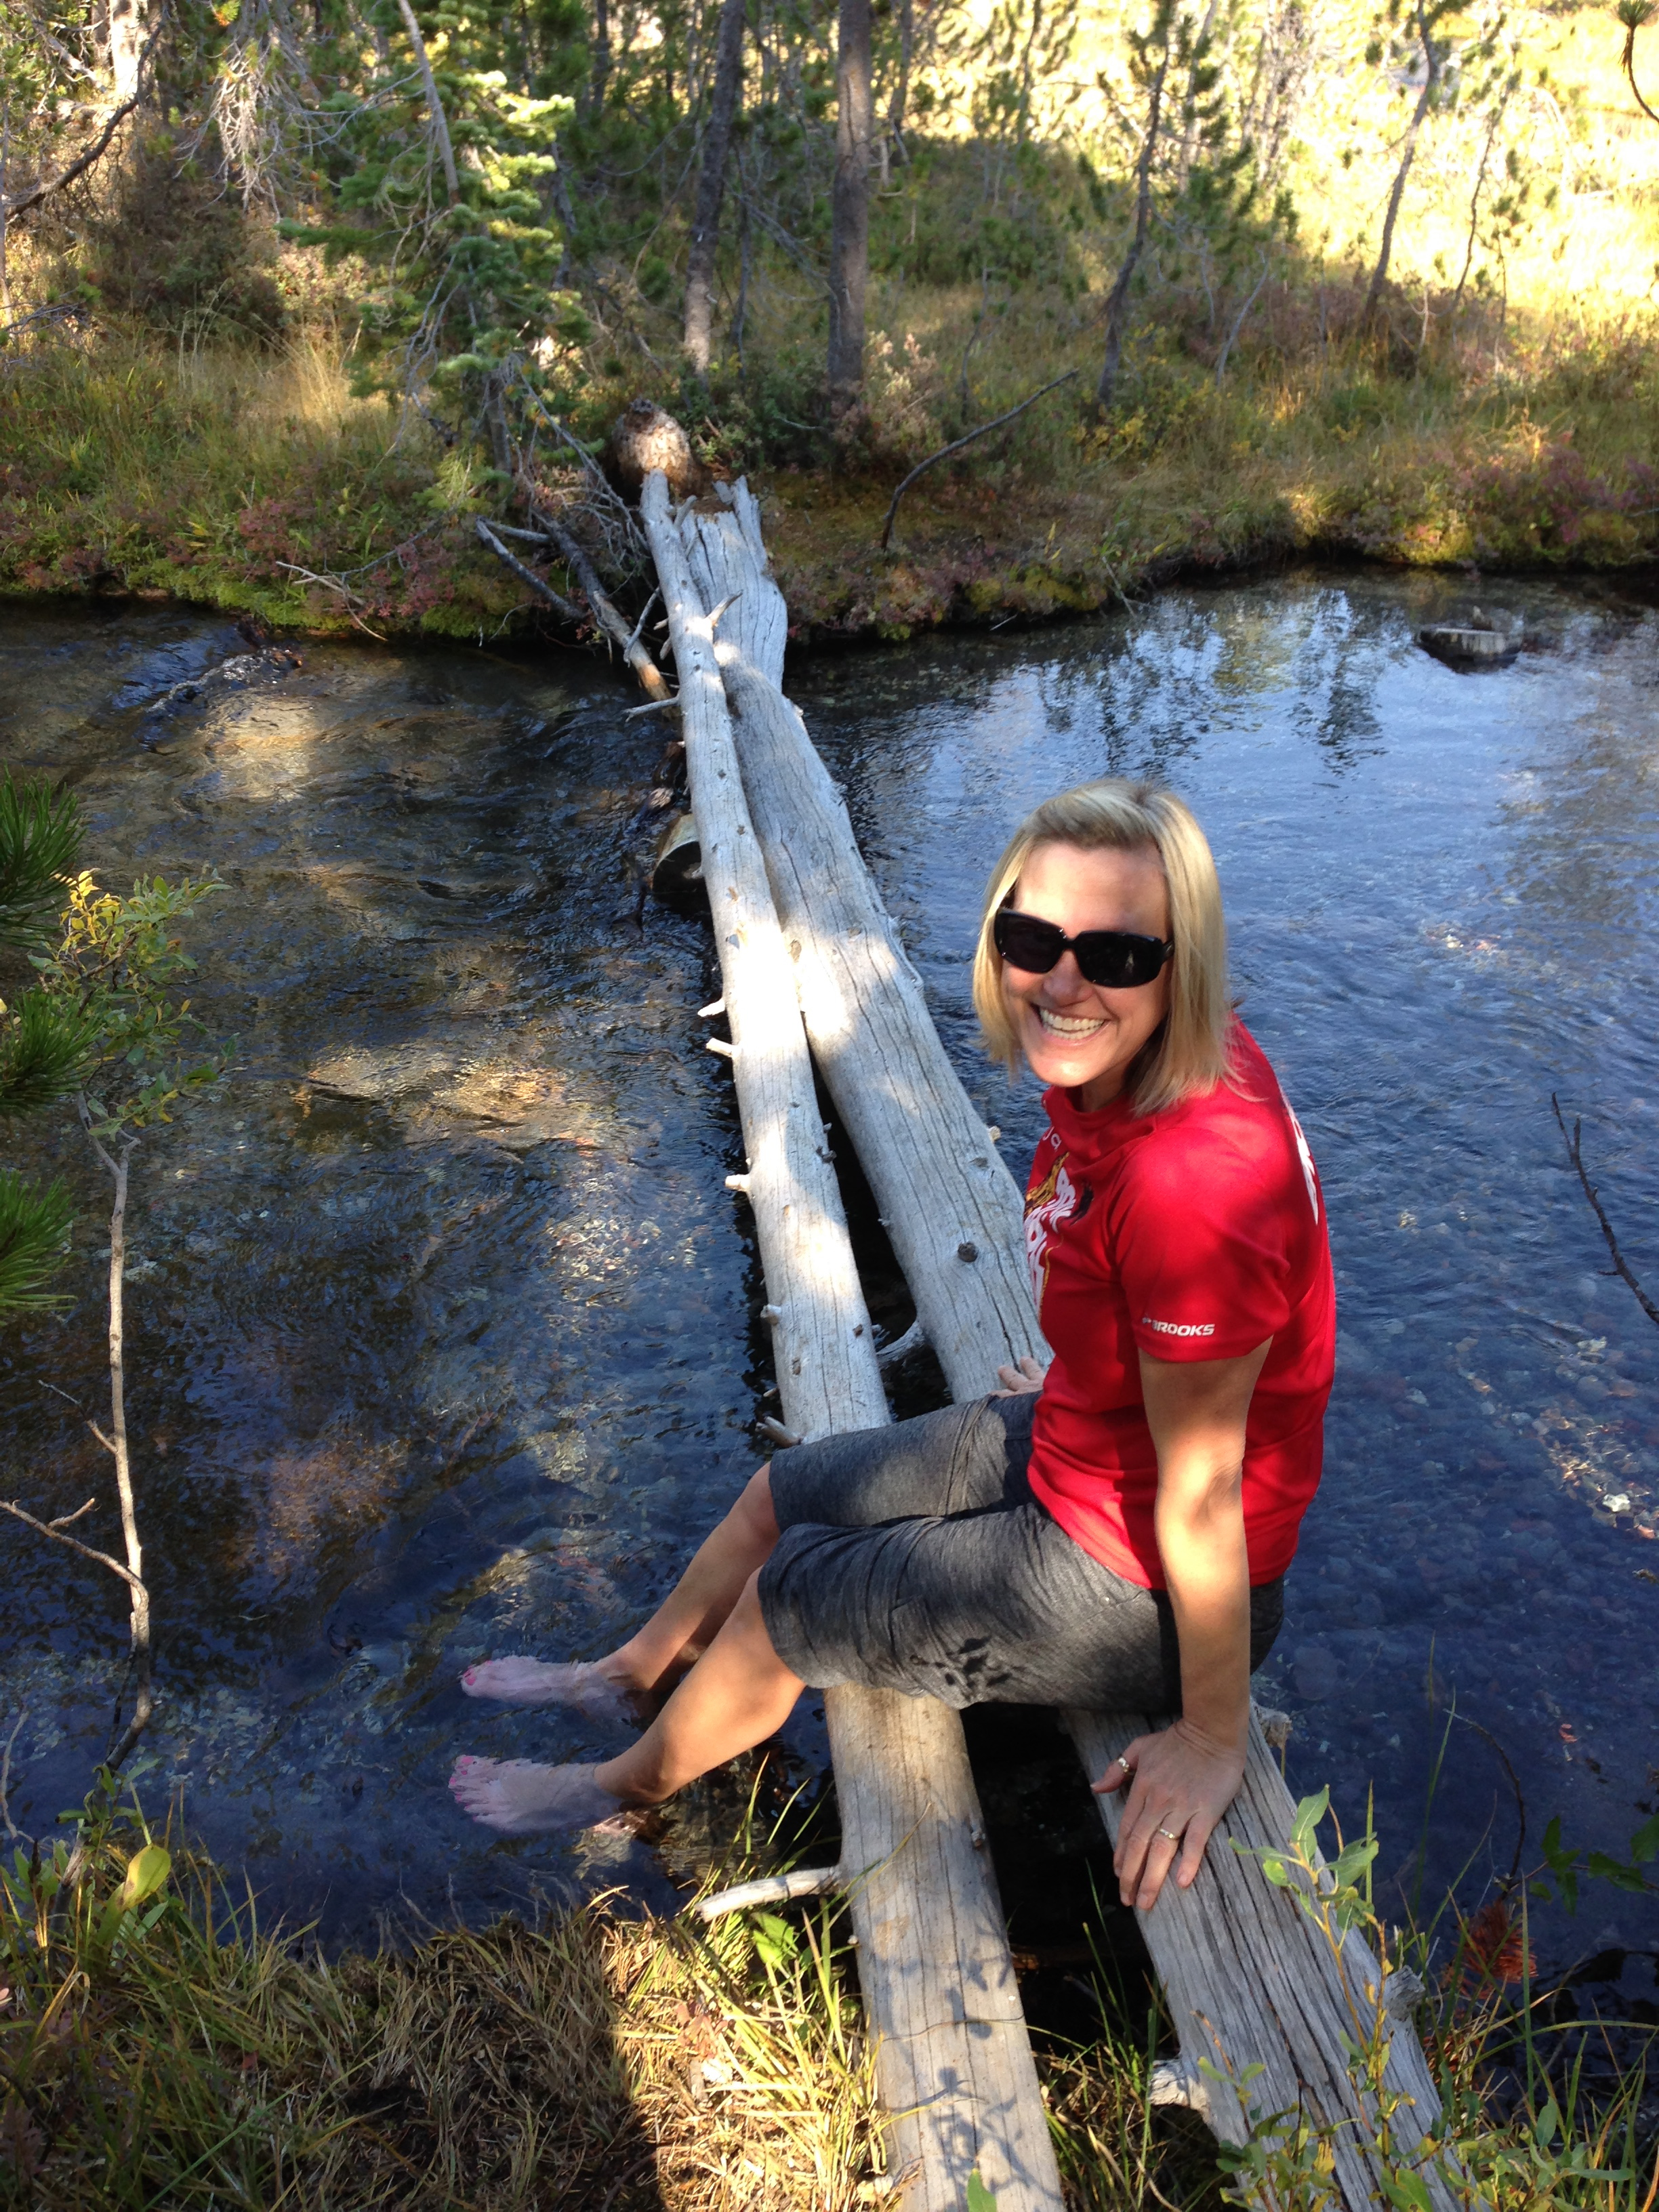 Cooling off my tootsies at the end of the hike.